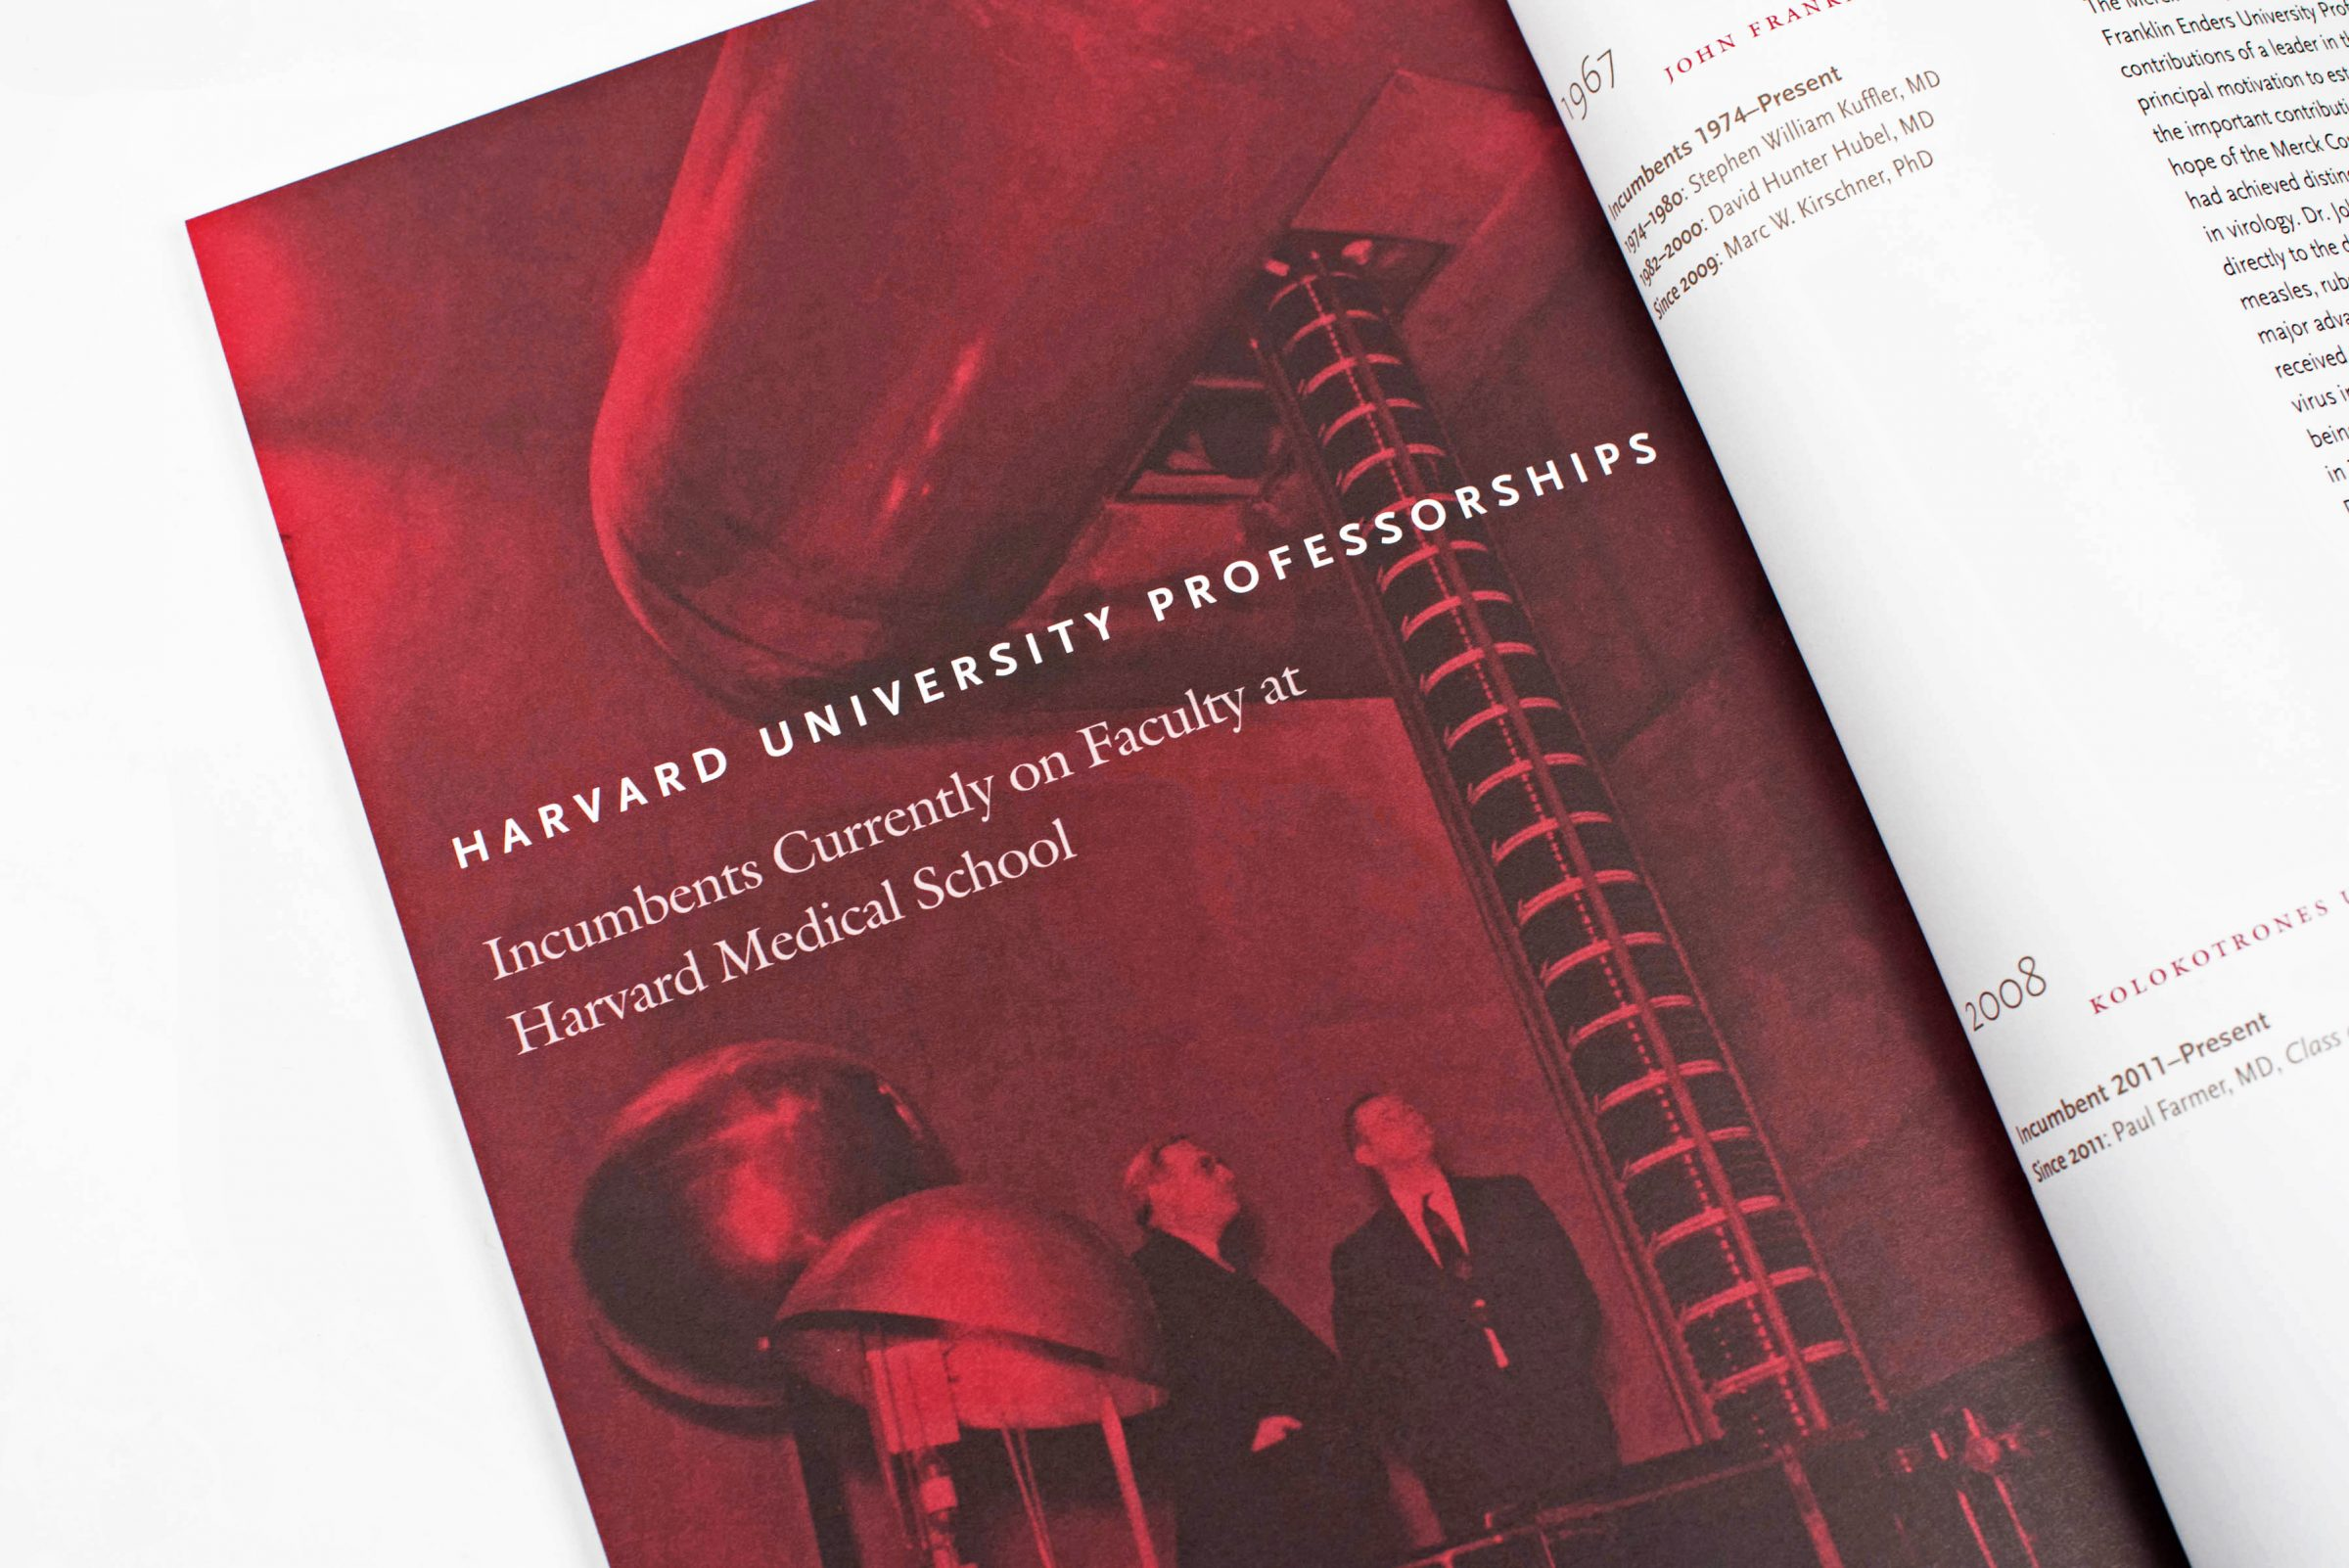 Harvard Medical Quadrangle Professorships brochure interior: Incumbents currently on faculty at Harvard Medical School